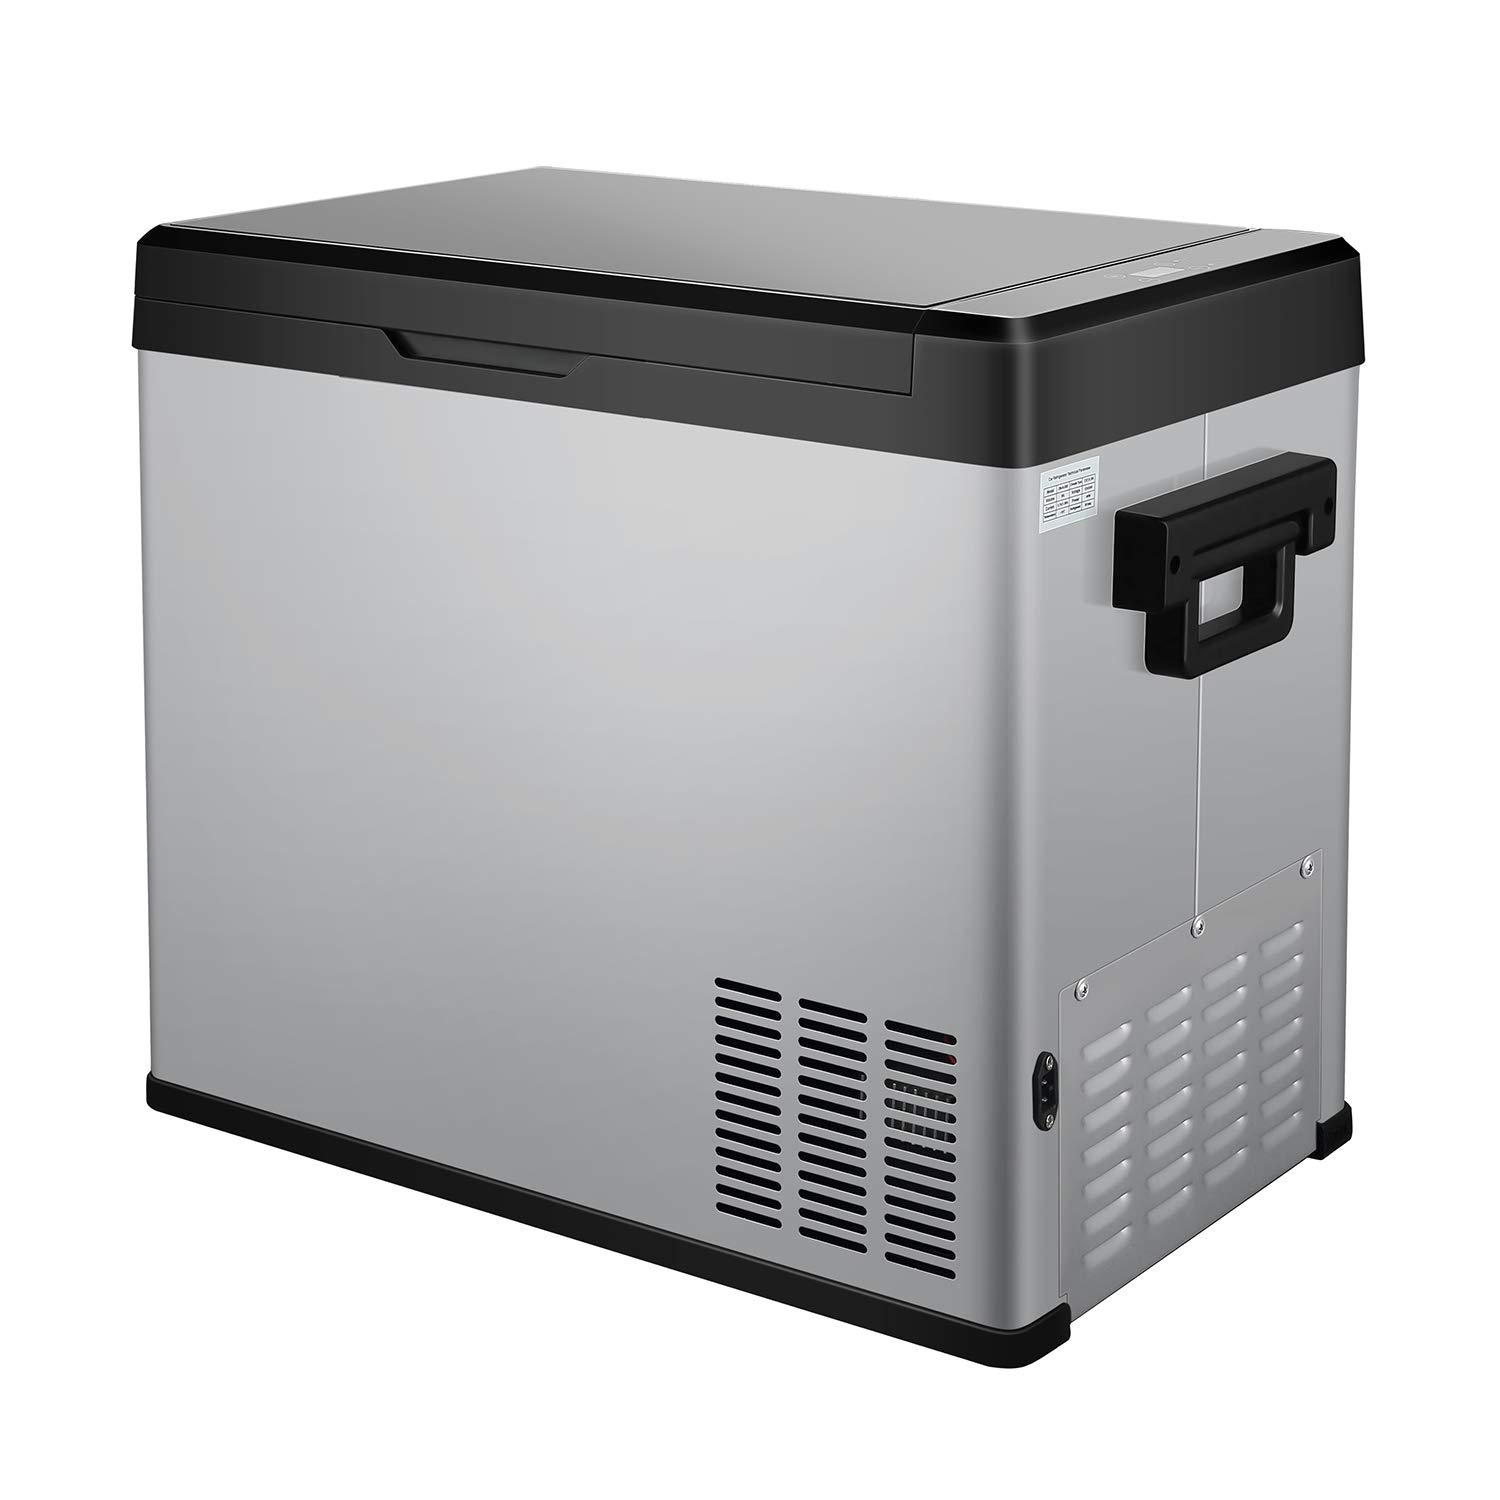 54 Quart Portable RV Refrigerator/Freezer Compact Vehicle Car Fridge Compressor Electric Cooler for Car,Truck,RV,Boat,Outdoor and Home use 12/24V DC and 90-250 AC,Cooling from 68°F to -13°F by Linsion